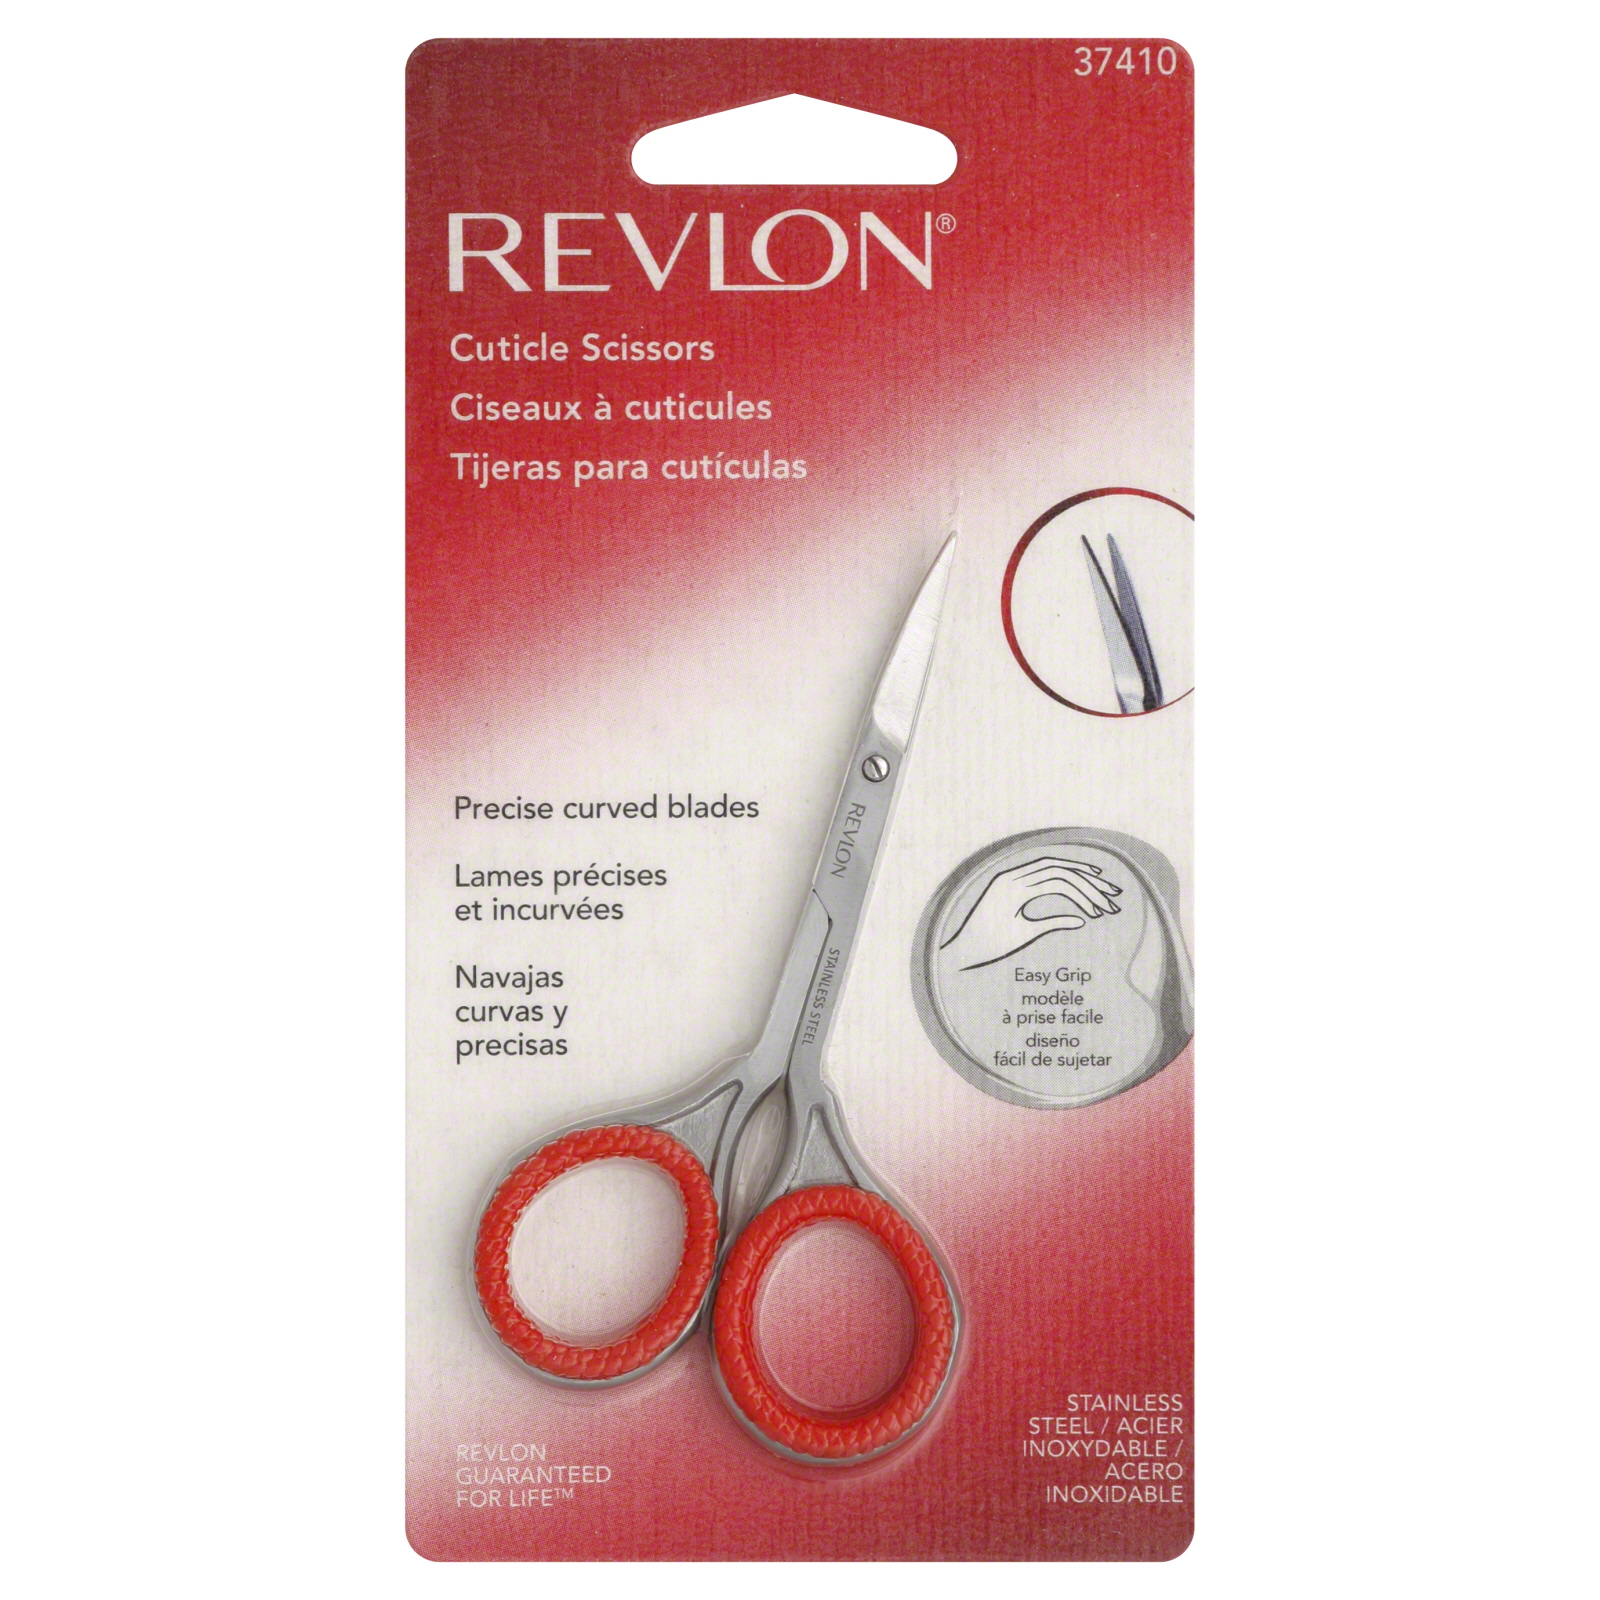 Revlon Cuticle Scissors, Curved Blade